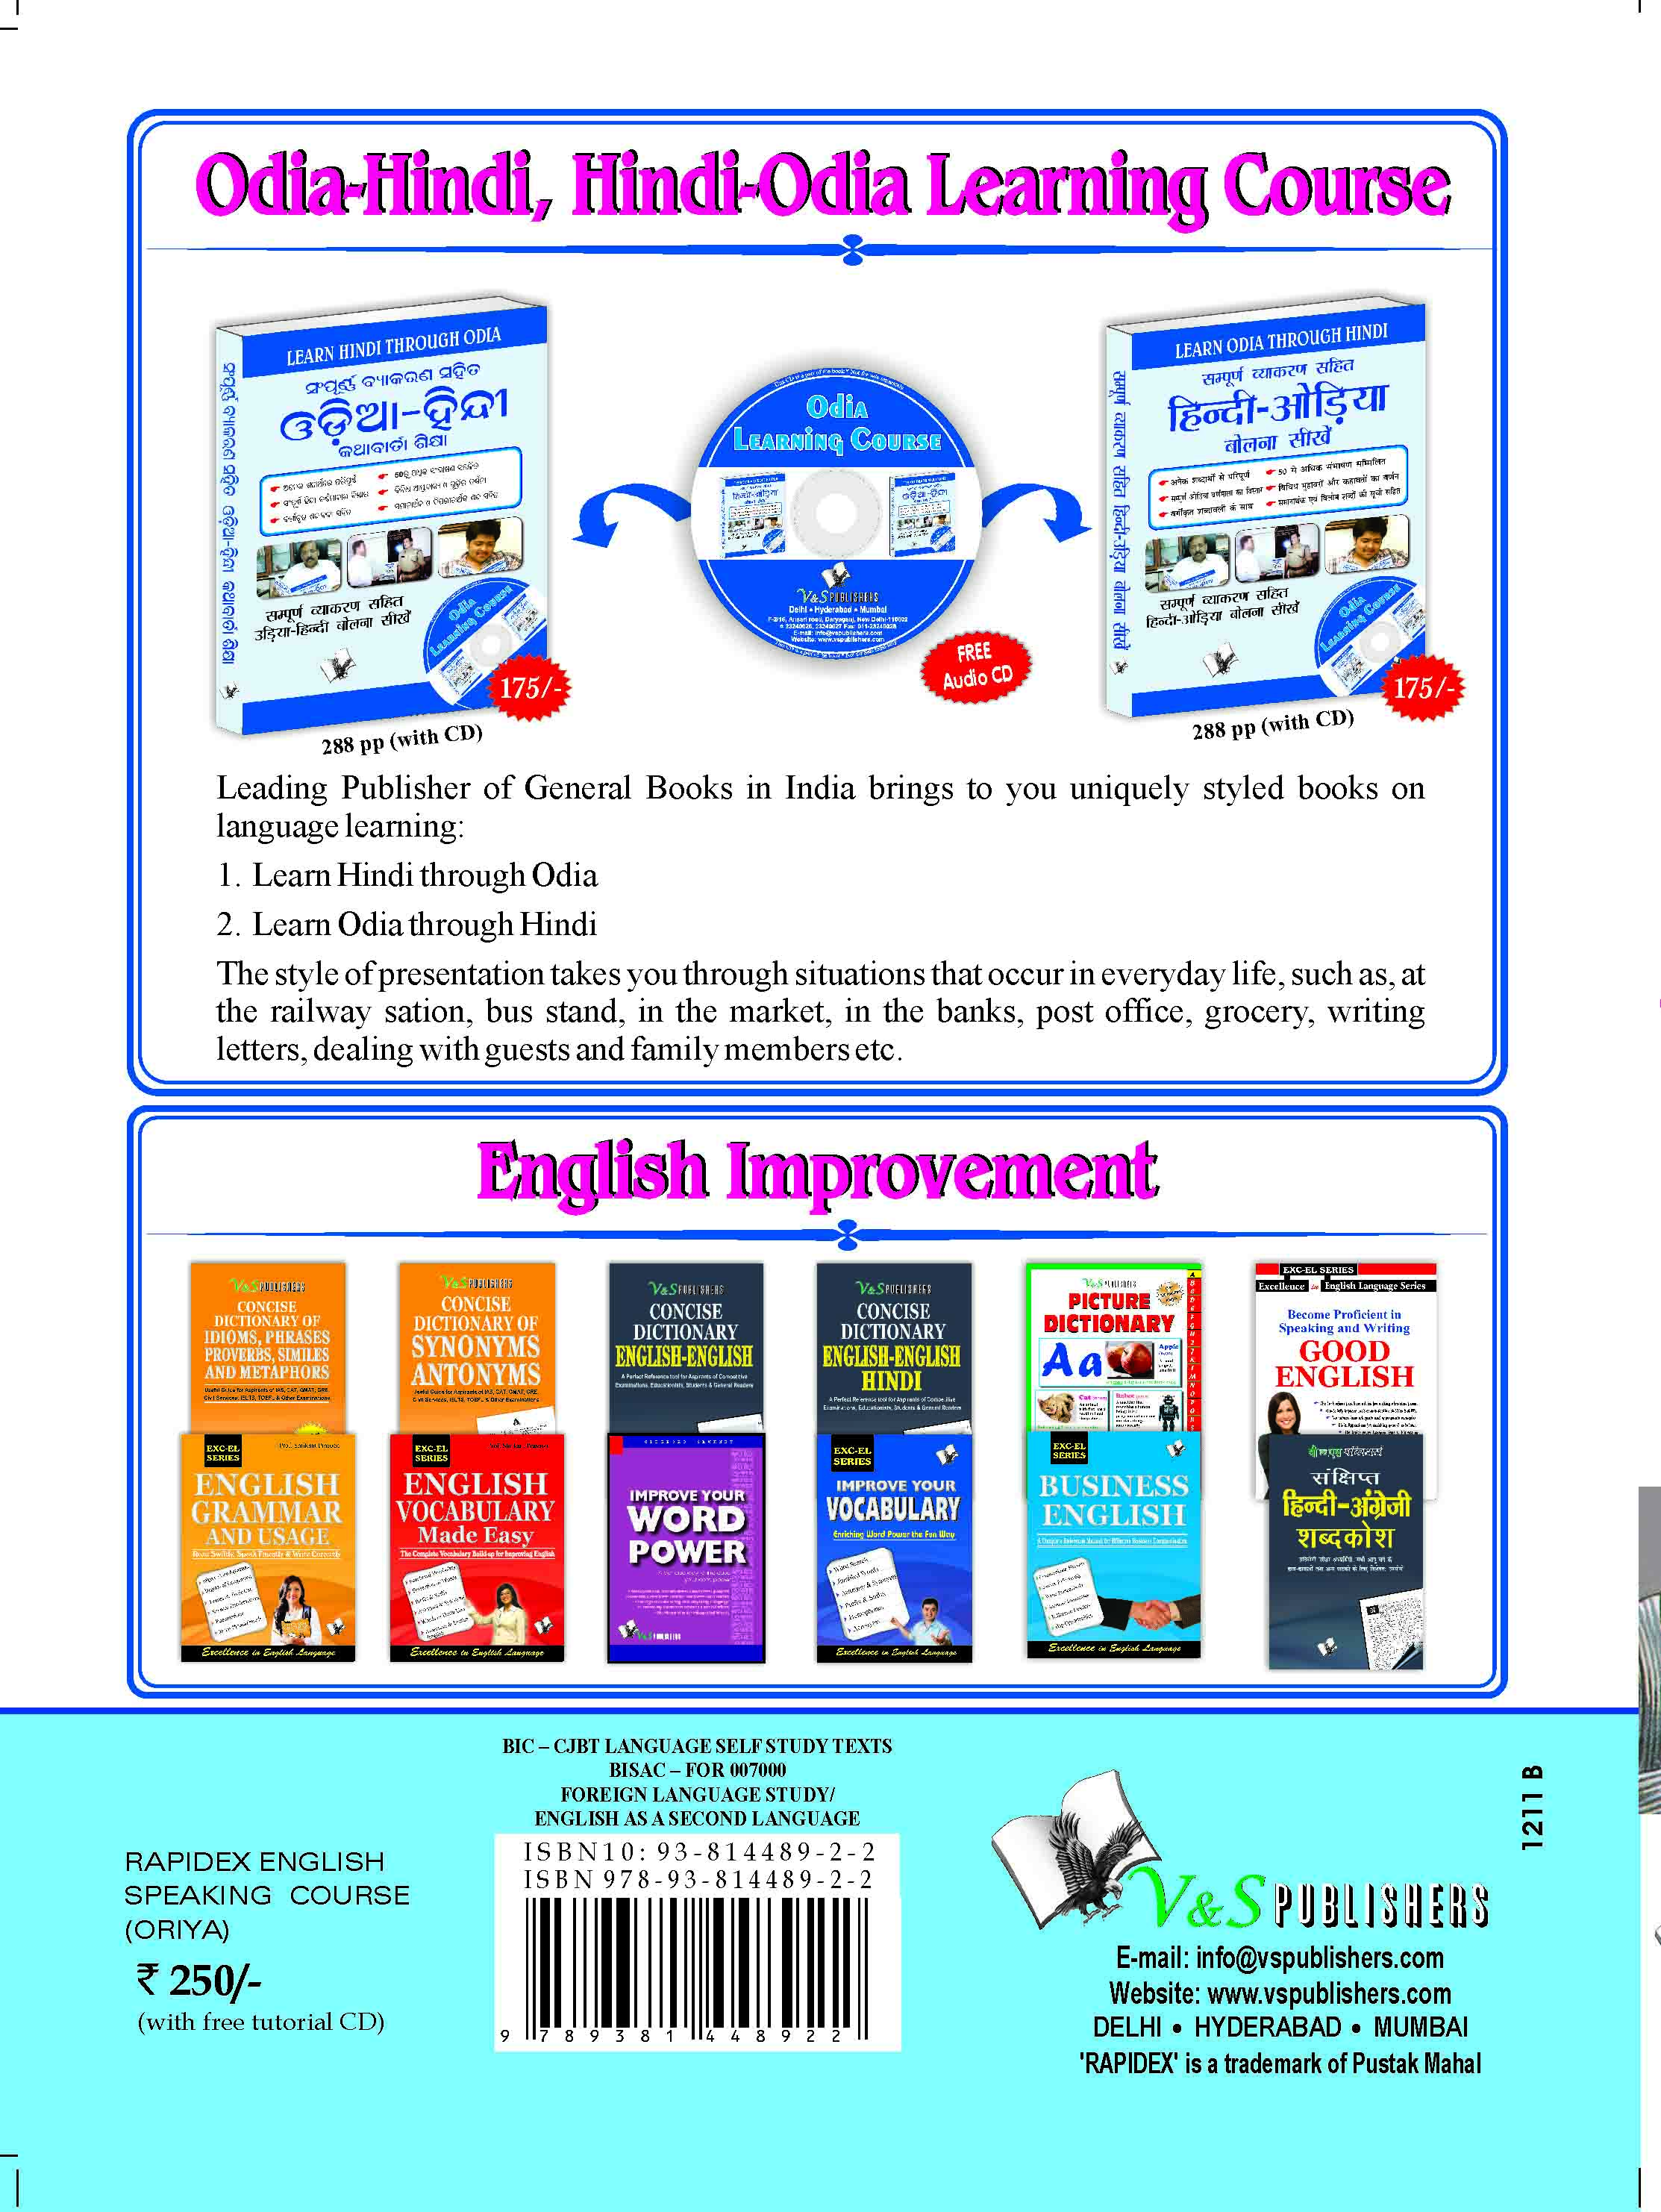 Rapidex English Speaking Course (Oriya) (With Youtube AV)